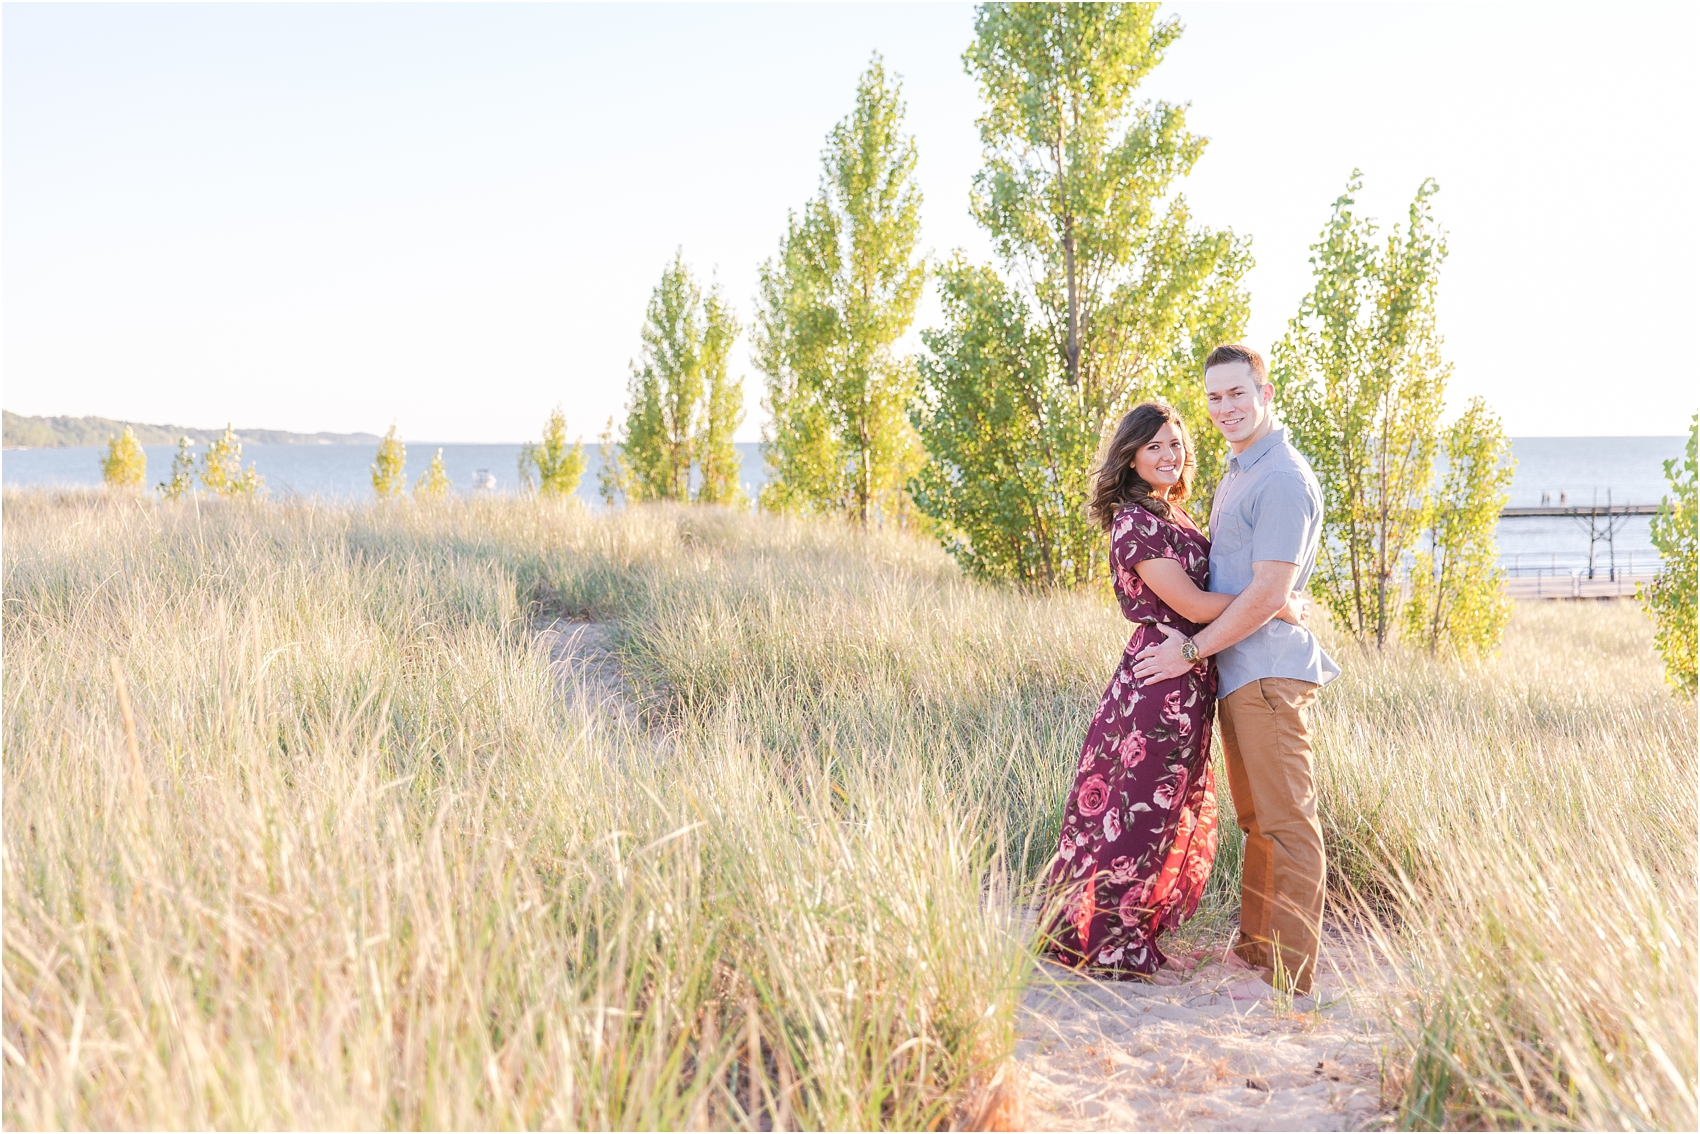 candid-end-of-summer-sunset-engagement-photos-at-silver-beach-in-st-joseph-mi-by-courtney-carolyn-photography_0025.jpg